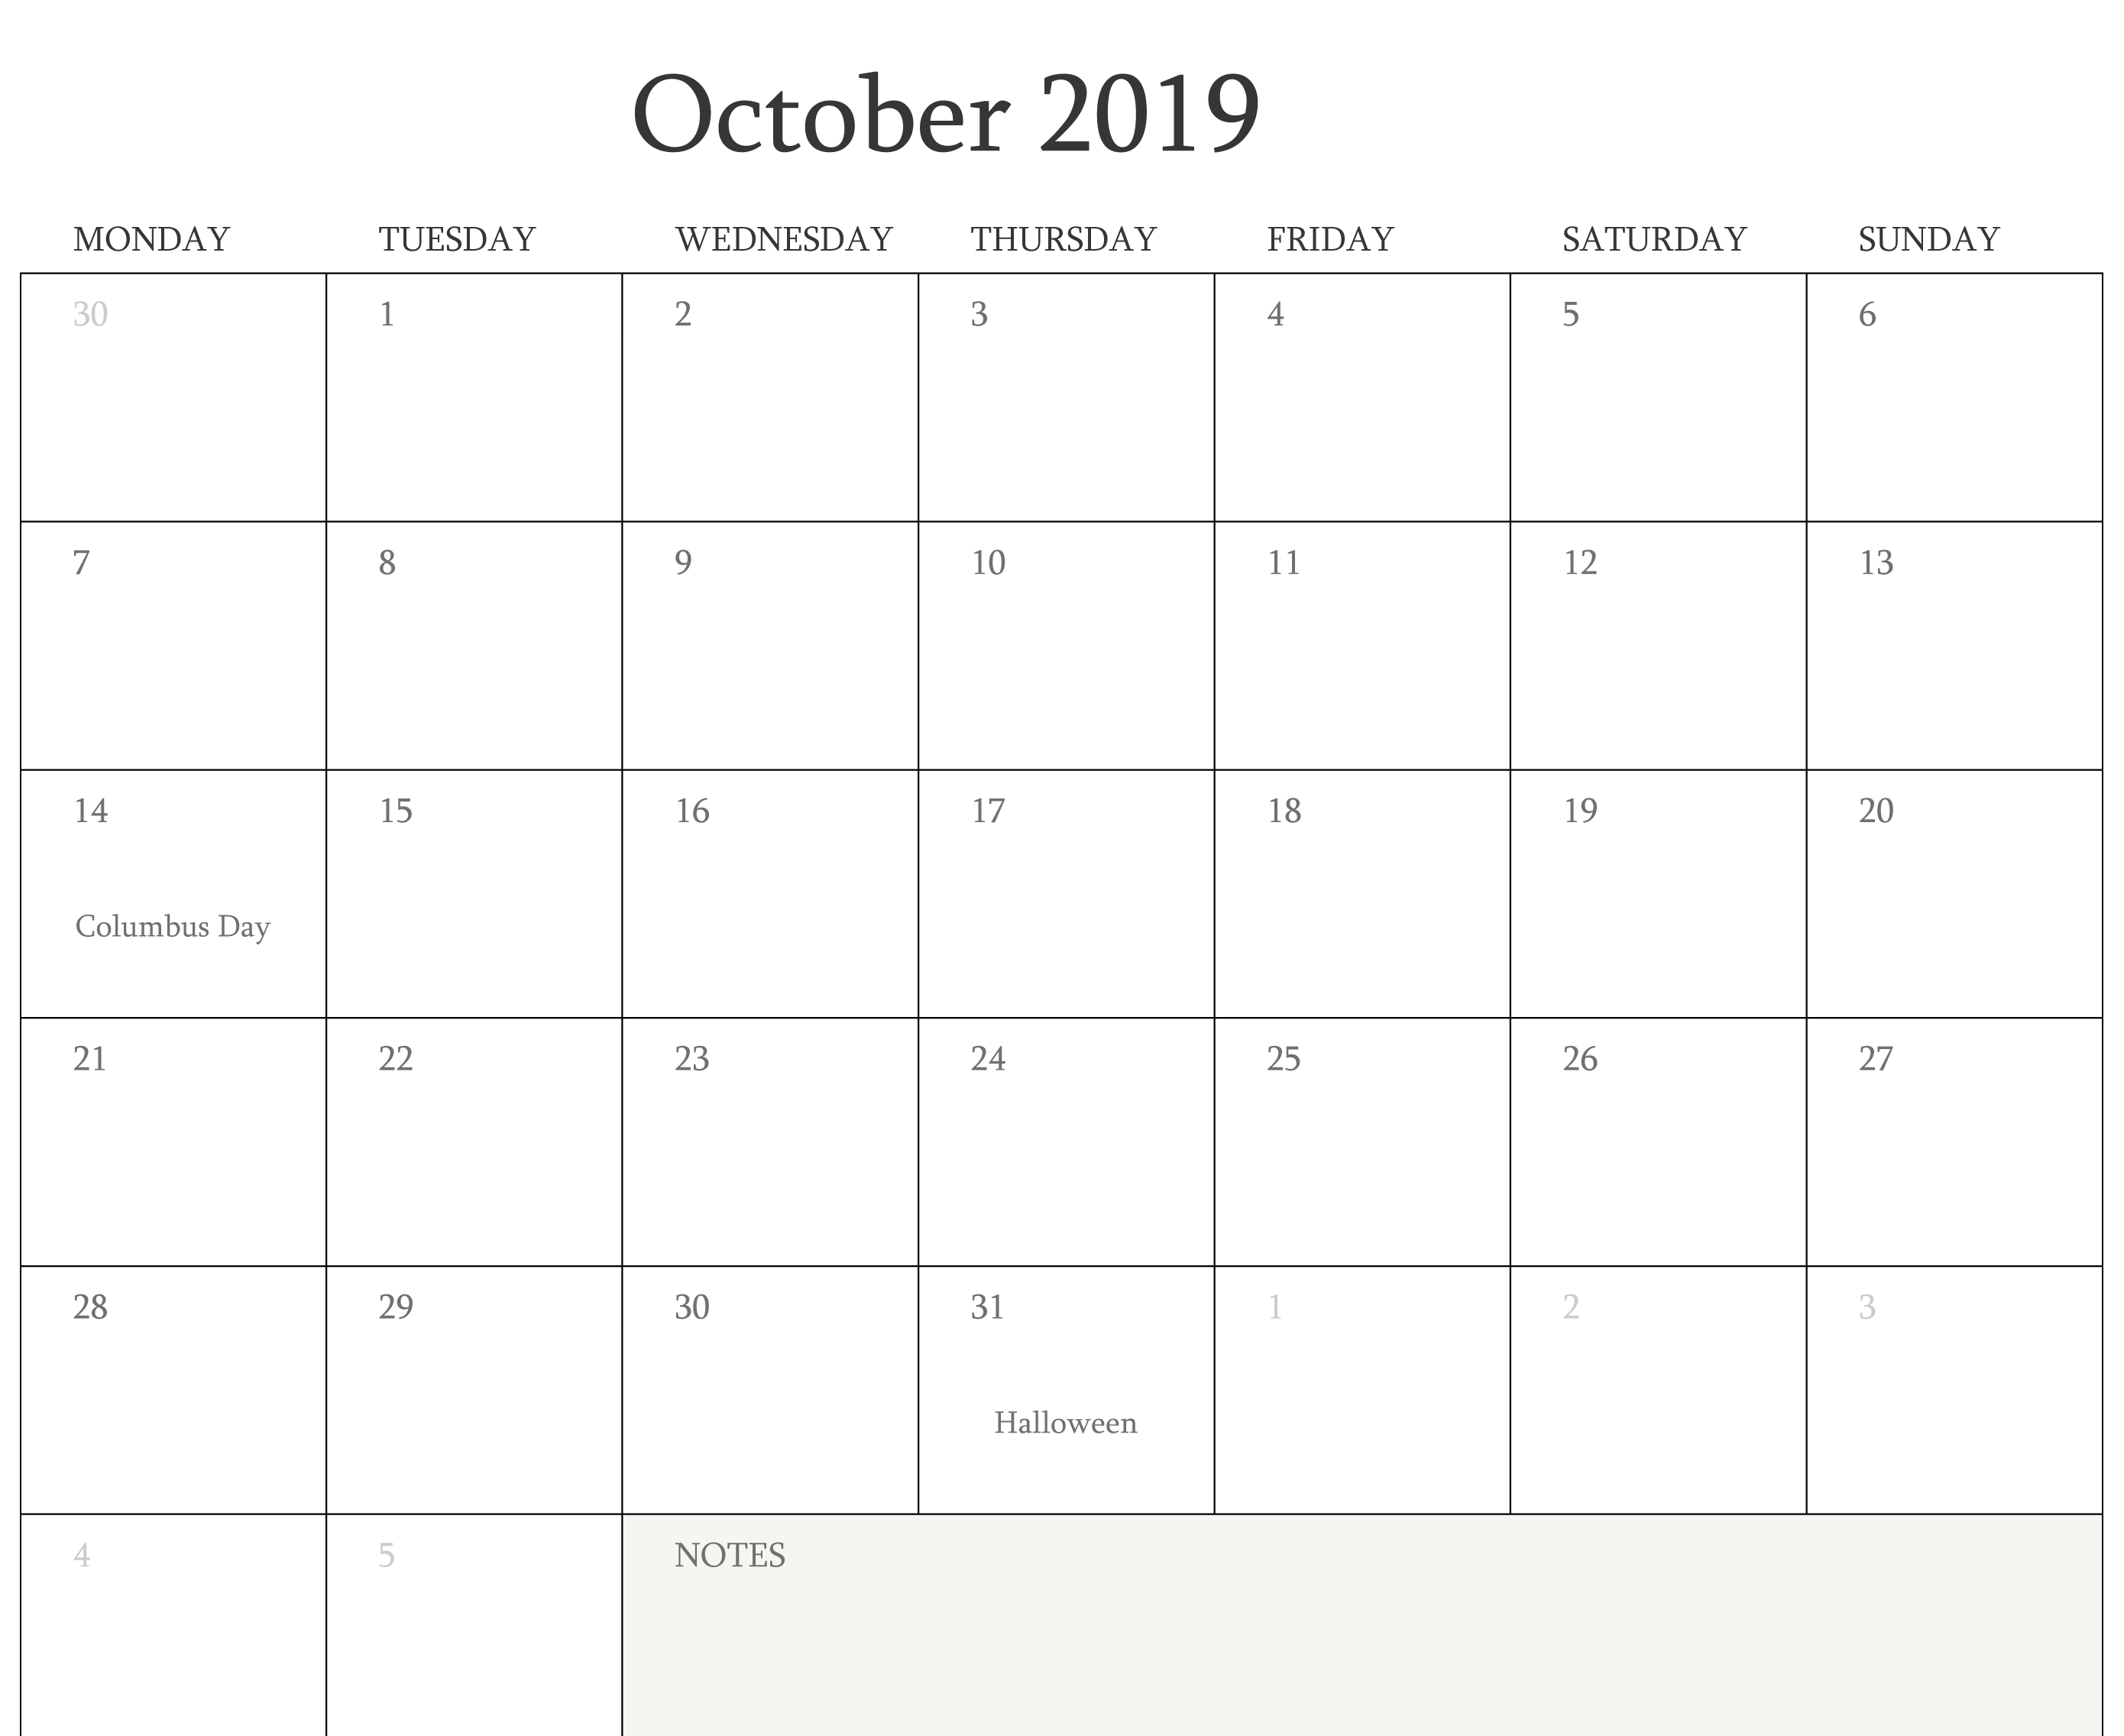 Free October 2019 Calendar With Holiday Holiday Calendar 2019 Calendar Calendar 2020